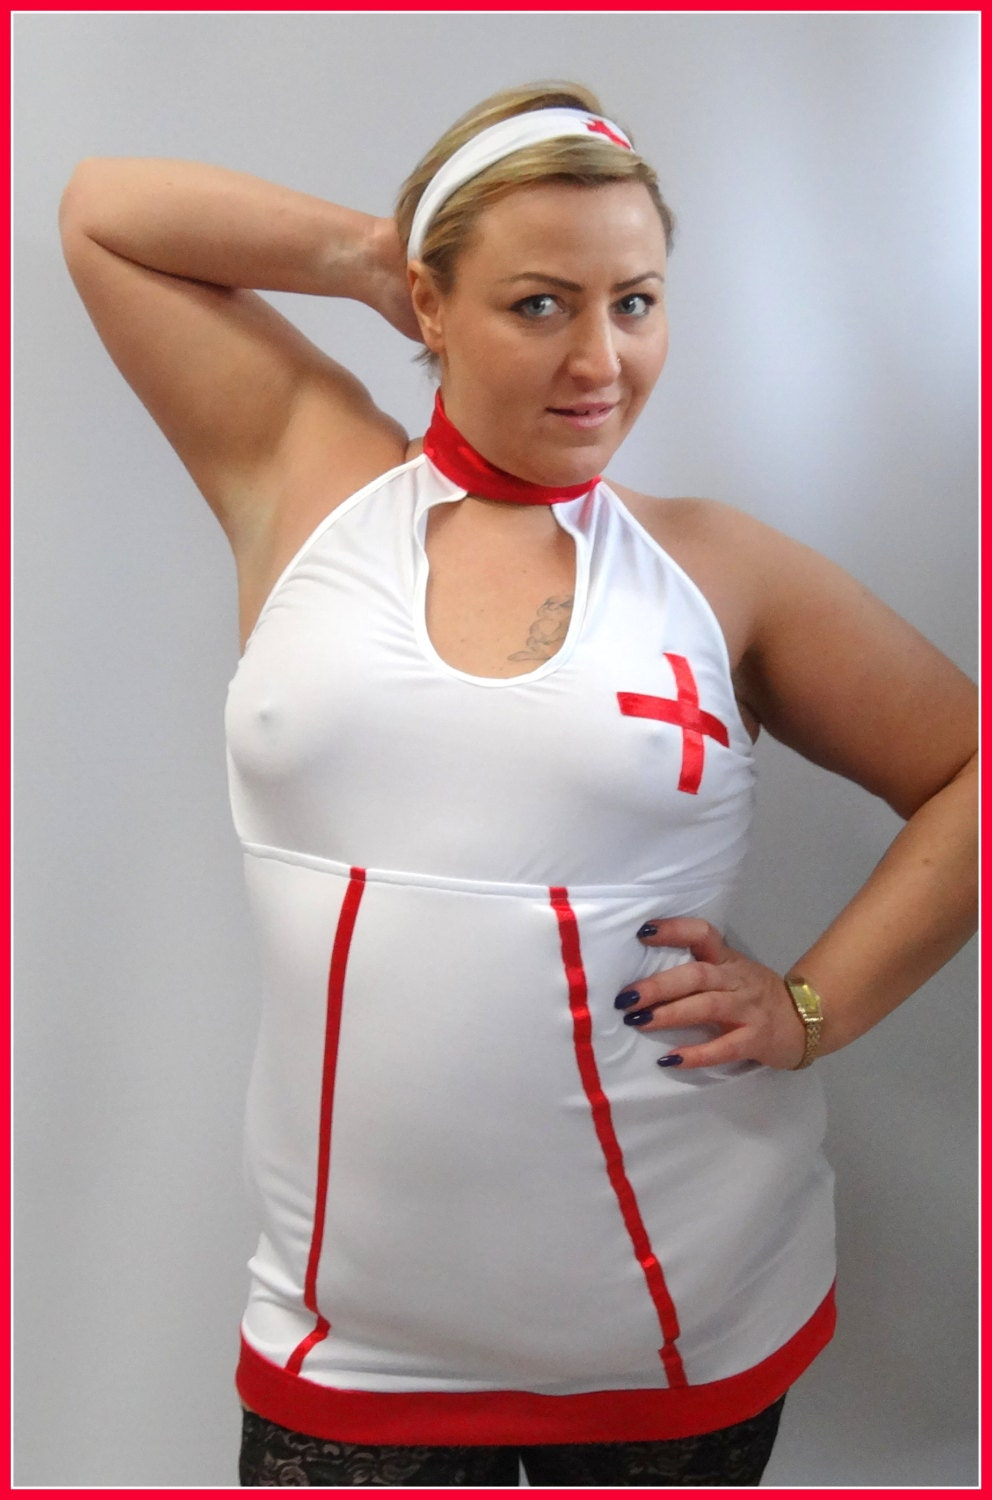 la france single bbw women We also have rankings of hte top bbw paysites and membership sites online  for women sites gay sites general sites  bbw single girl paysites.